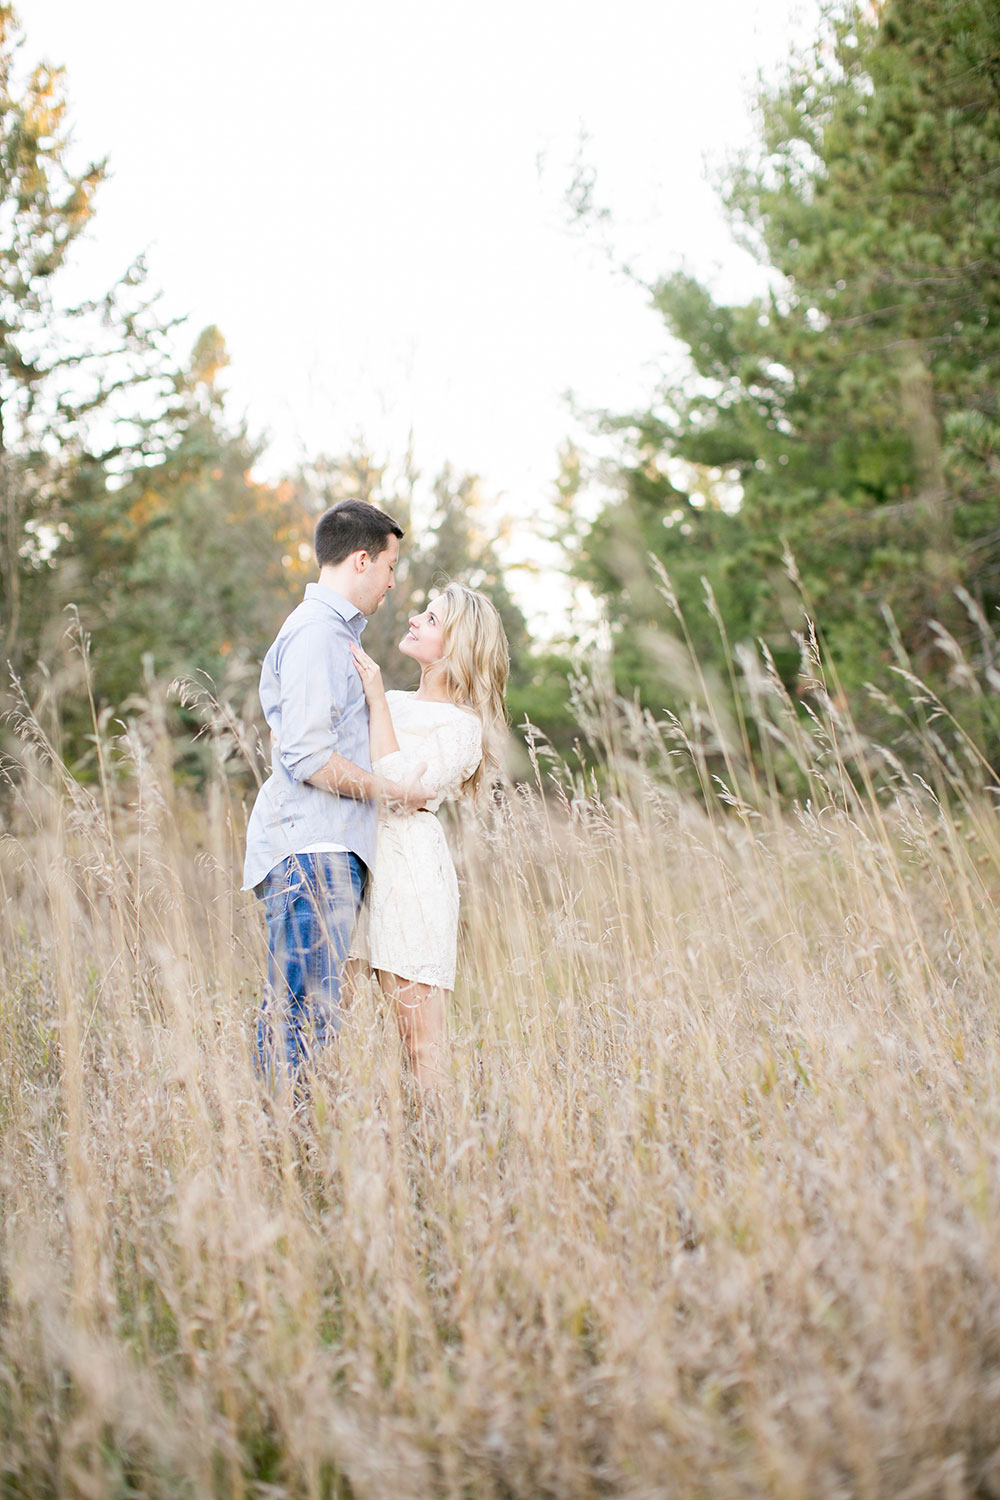 Albion-Hills-Conservation-Park-engagement-session-caledon-photo-by-philosophy-studios-eva-derrick-photography-015.jpg